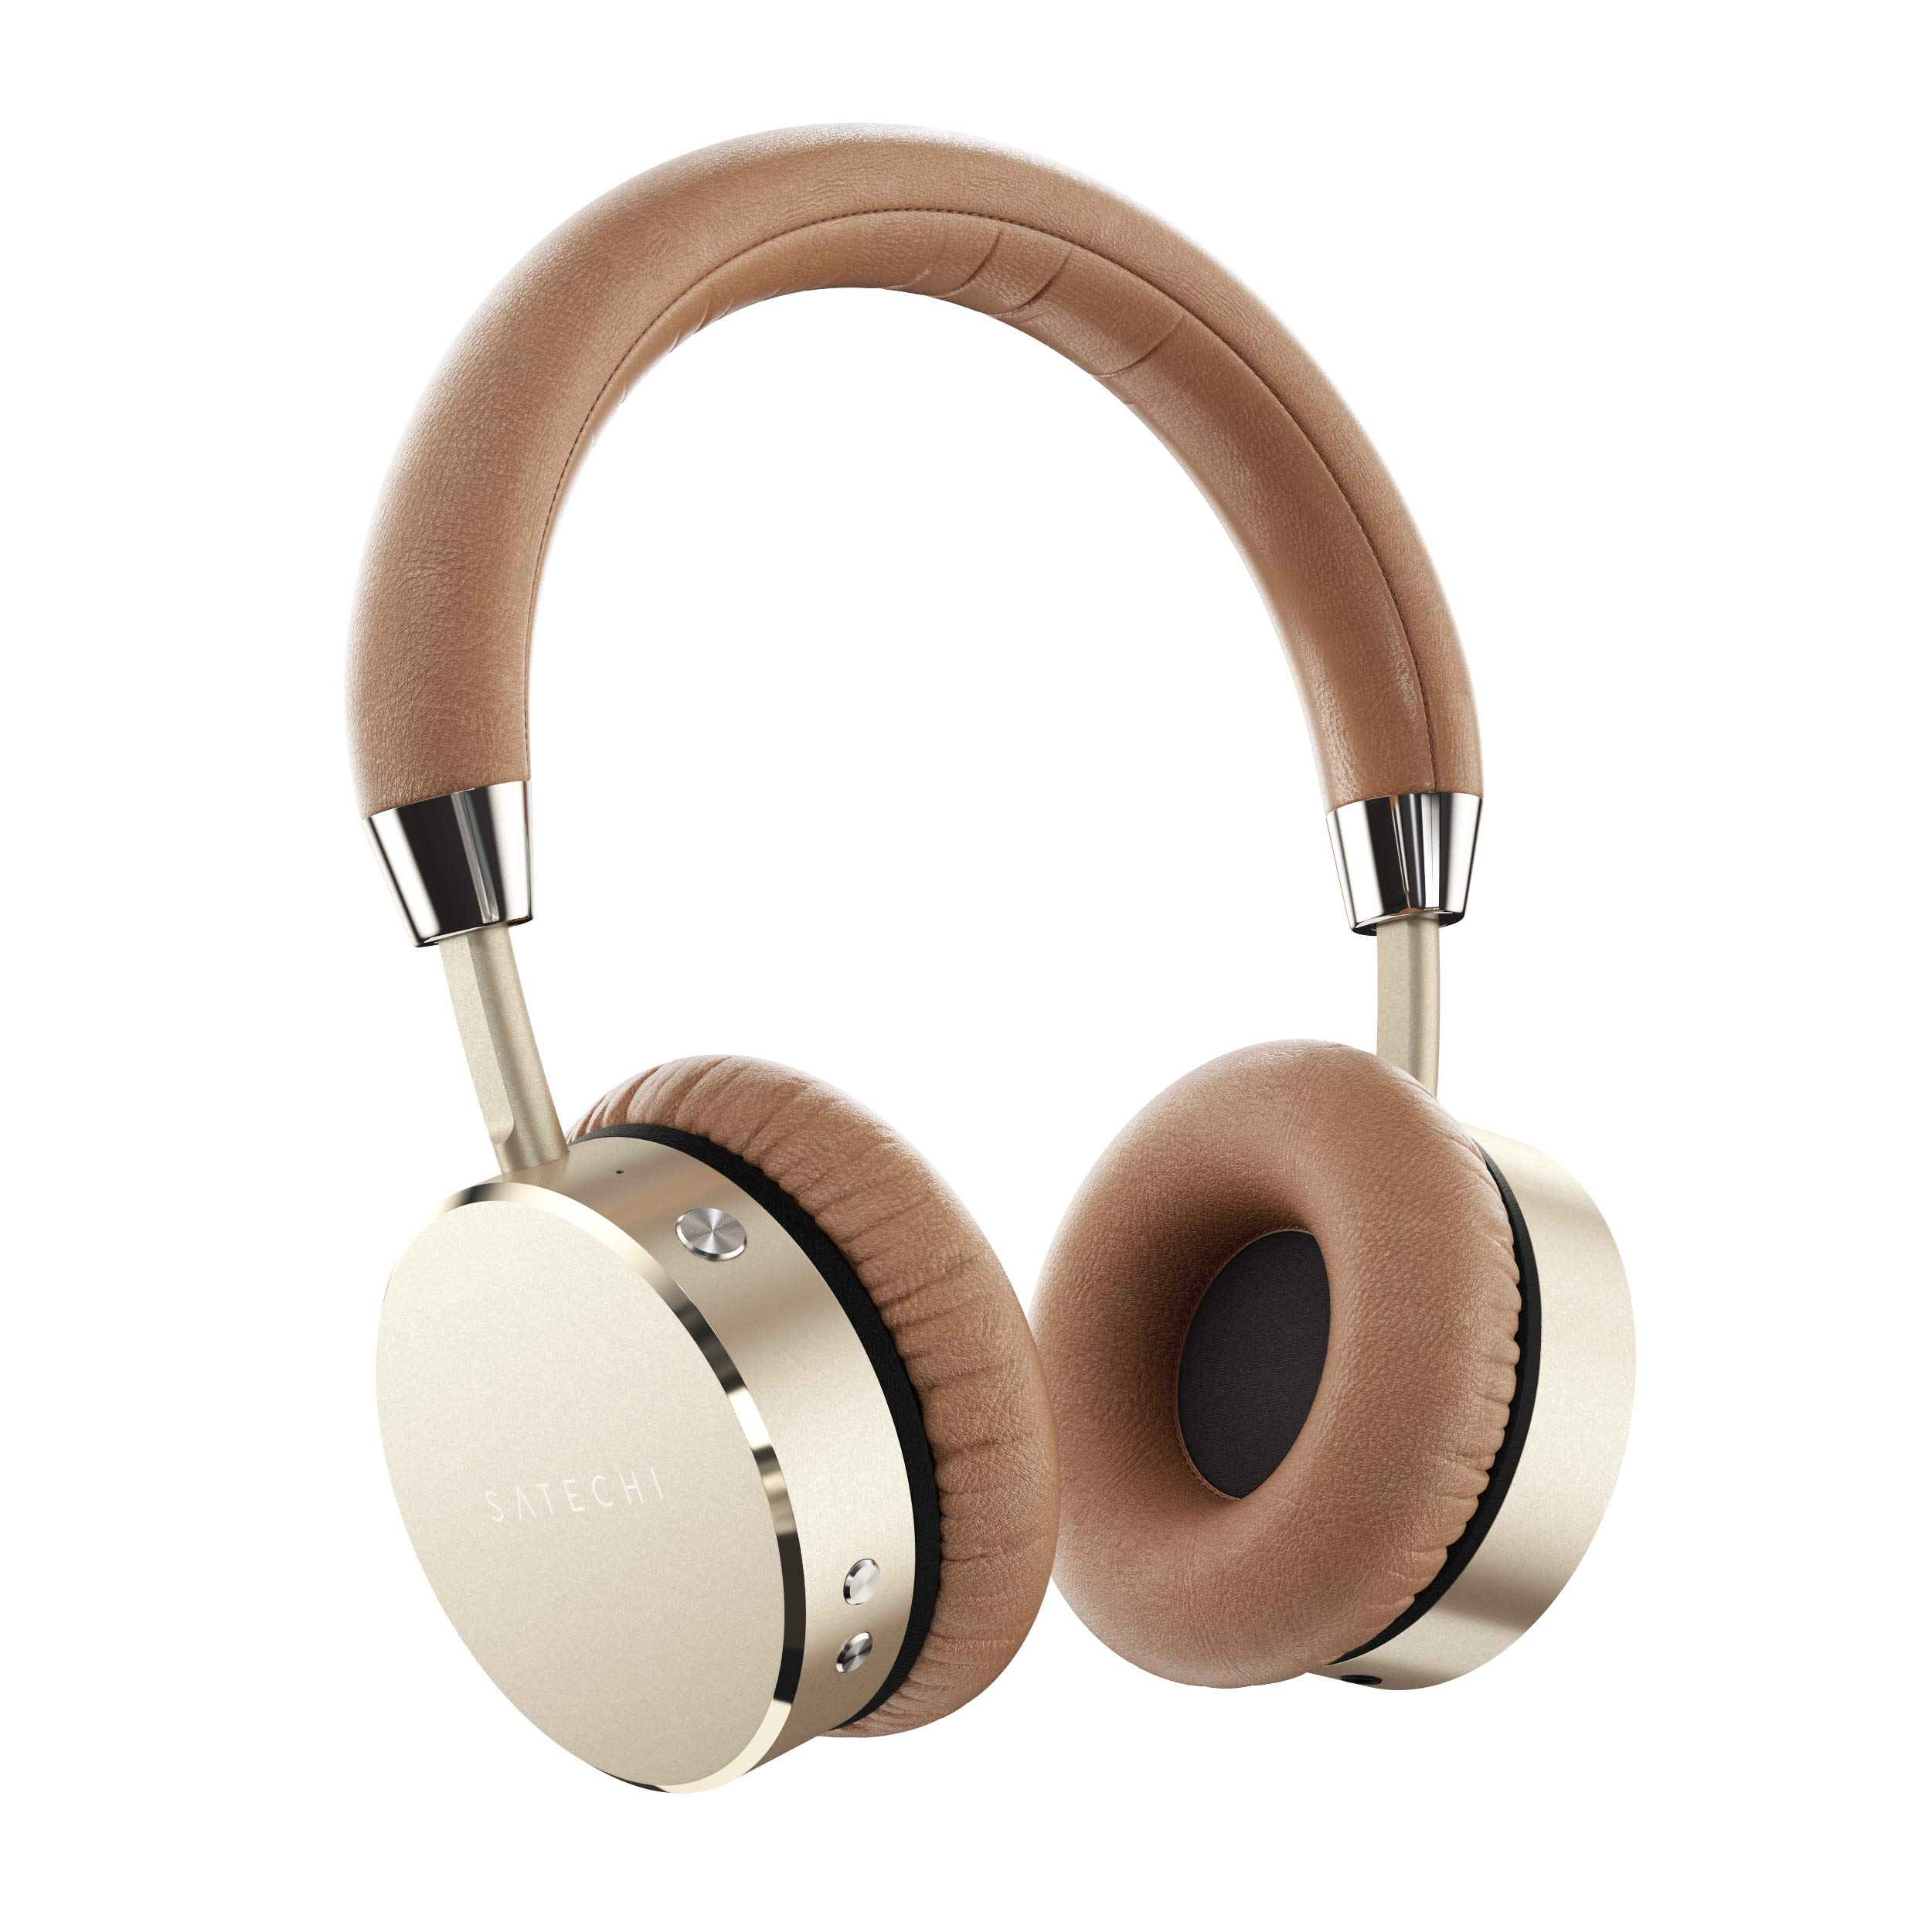 Amazon Com Satechi Aluminum Bluetooth Wireless Headphones With Enhanced Bass 3 5mm Audio Out Jack For Iphone X 8 Plus 8 Samsung Galaxy S8 S7 And More Gold Electronics